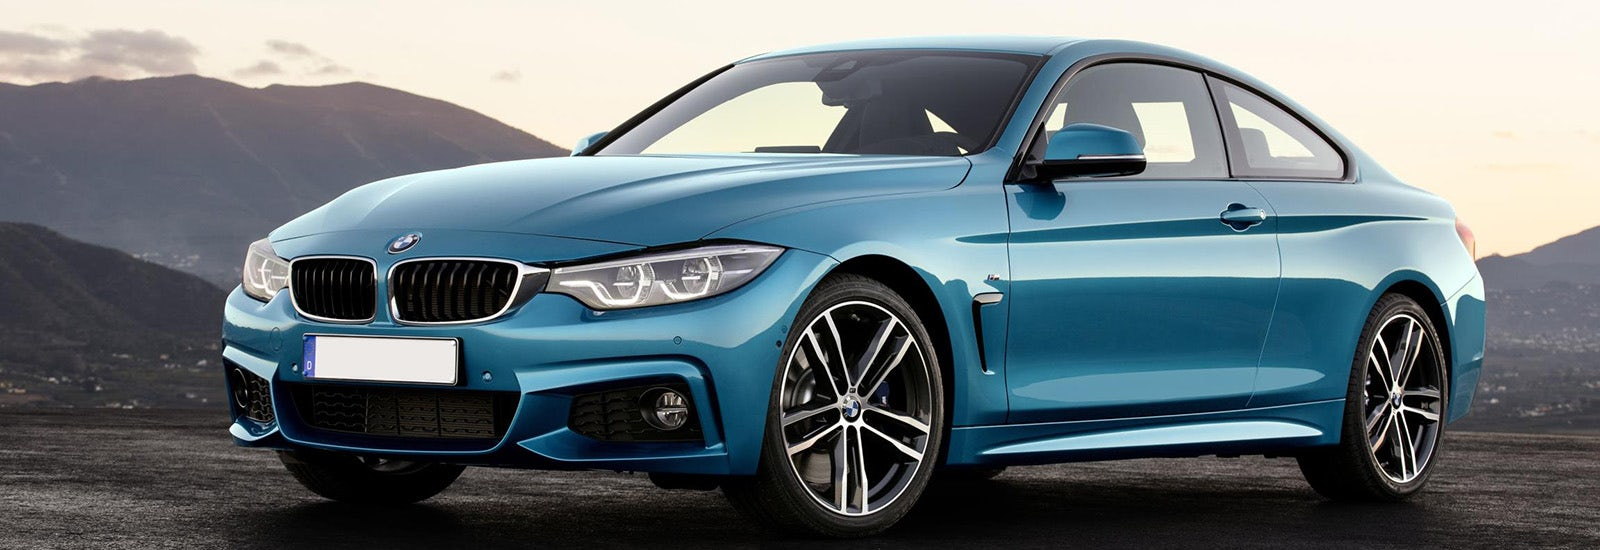 The Updates Apply To All Three Models Across Range Including 4 Series Coupe Convertible And Gran